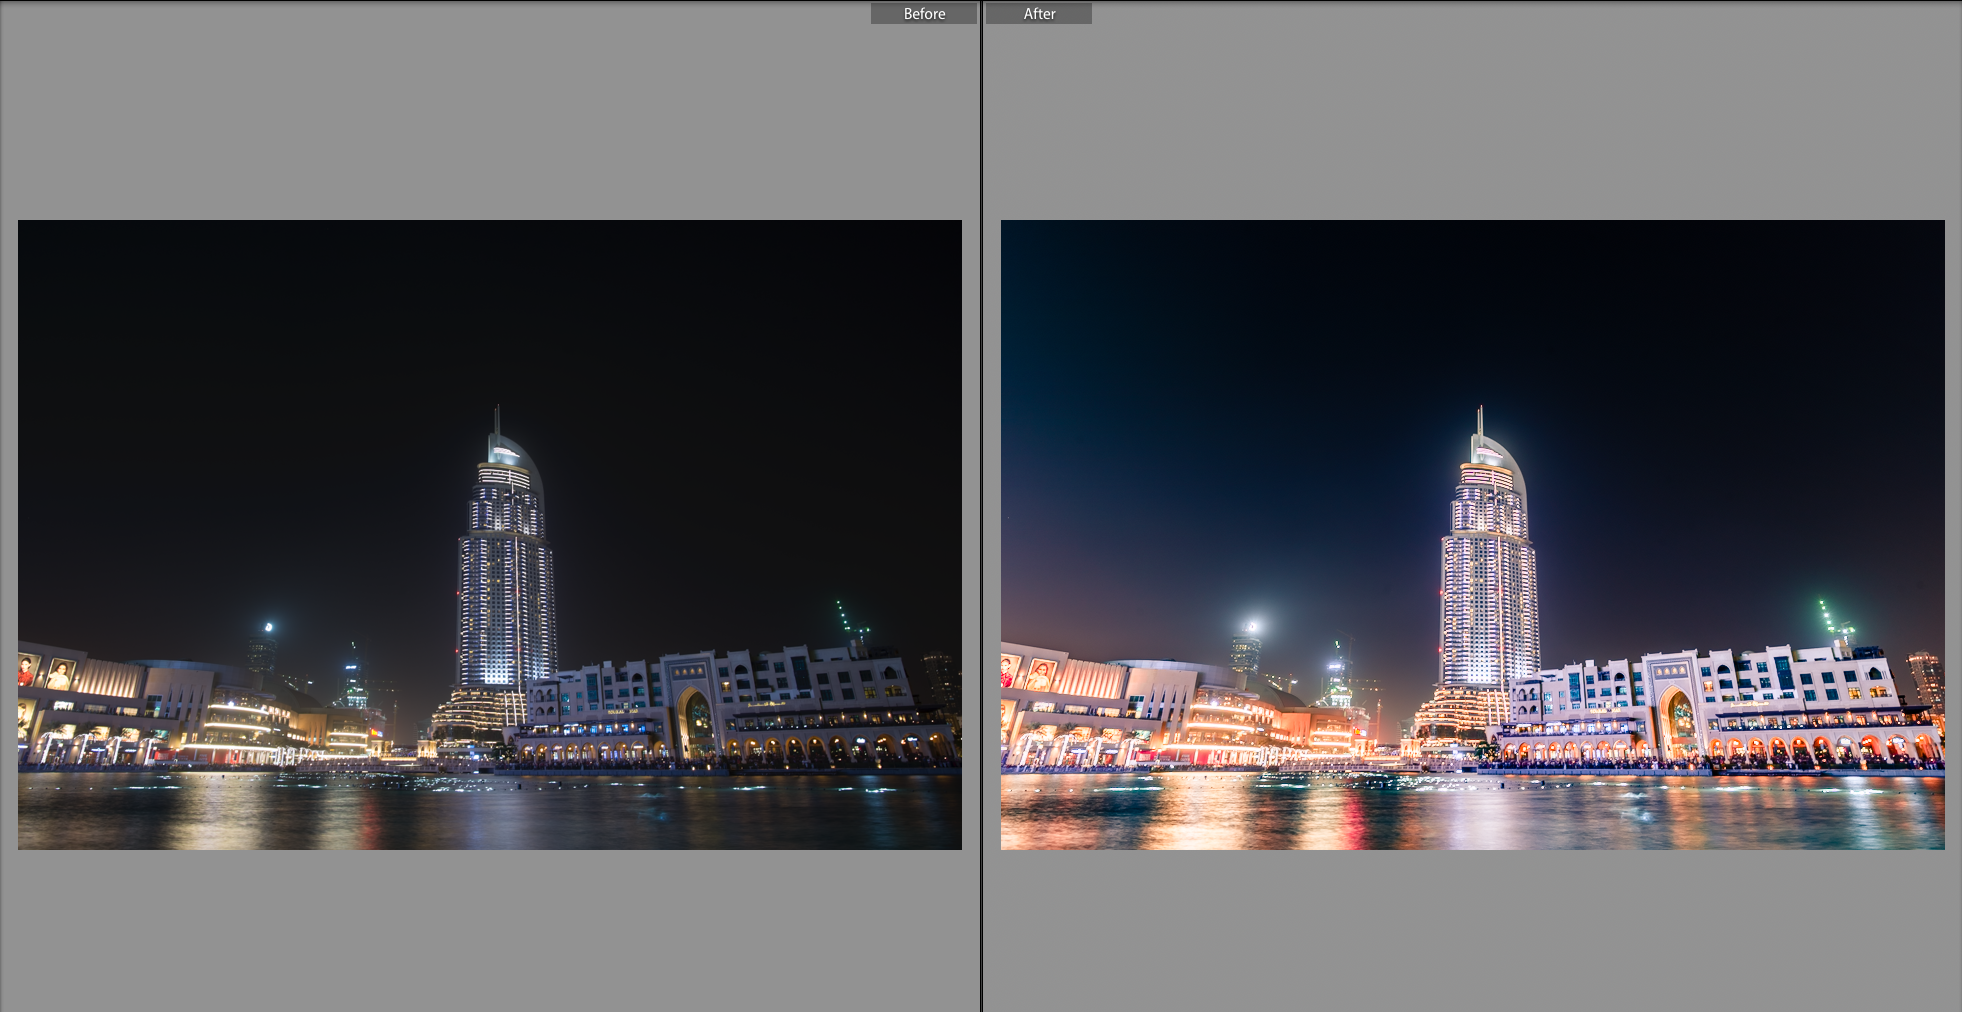 Preset used -AUTUMN COLOURS with adjustments to exposure,vibrancy,and colour temp along with a few movements in the RGB tone curve to give that warm and hot feel of the UAE.